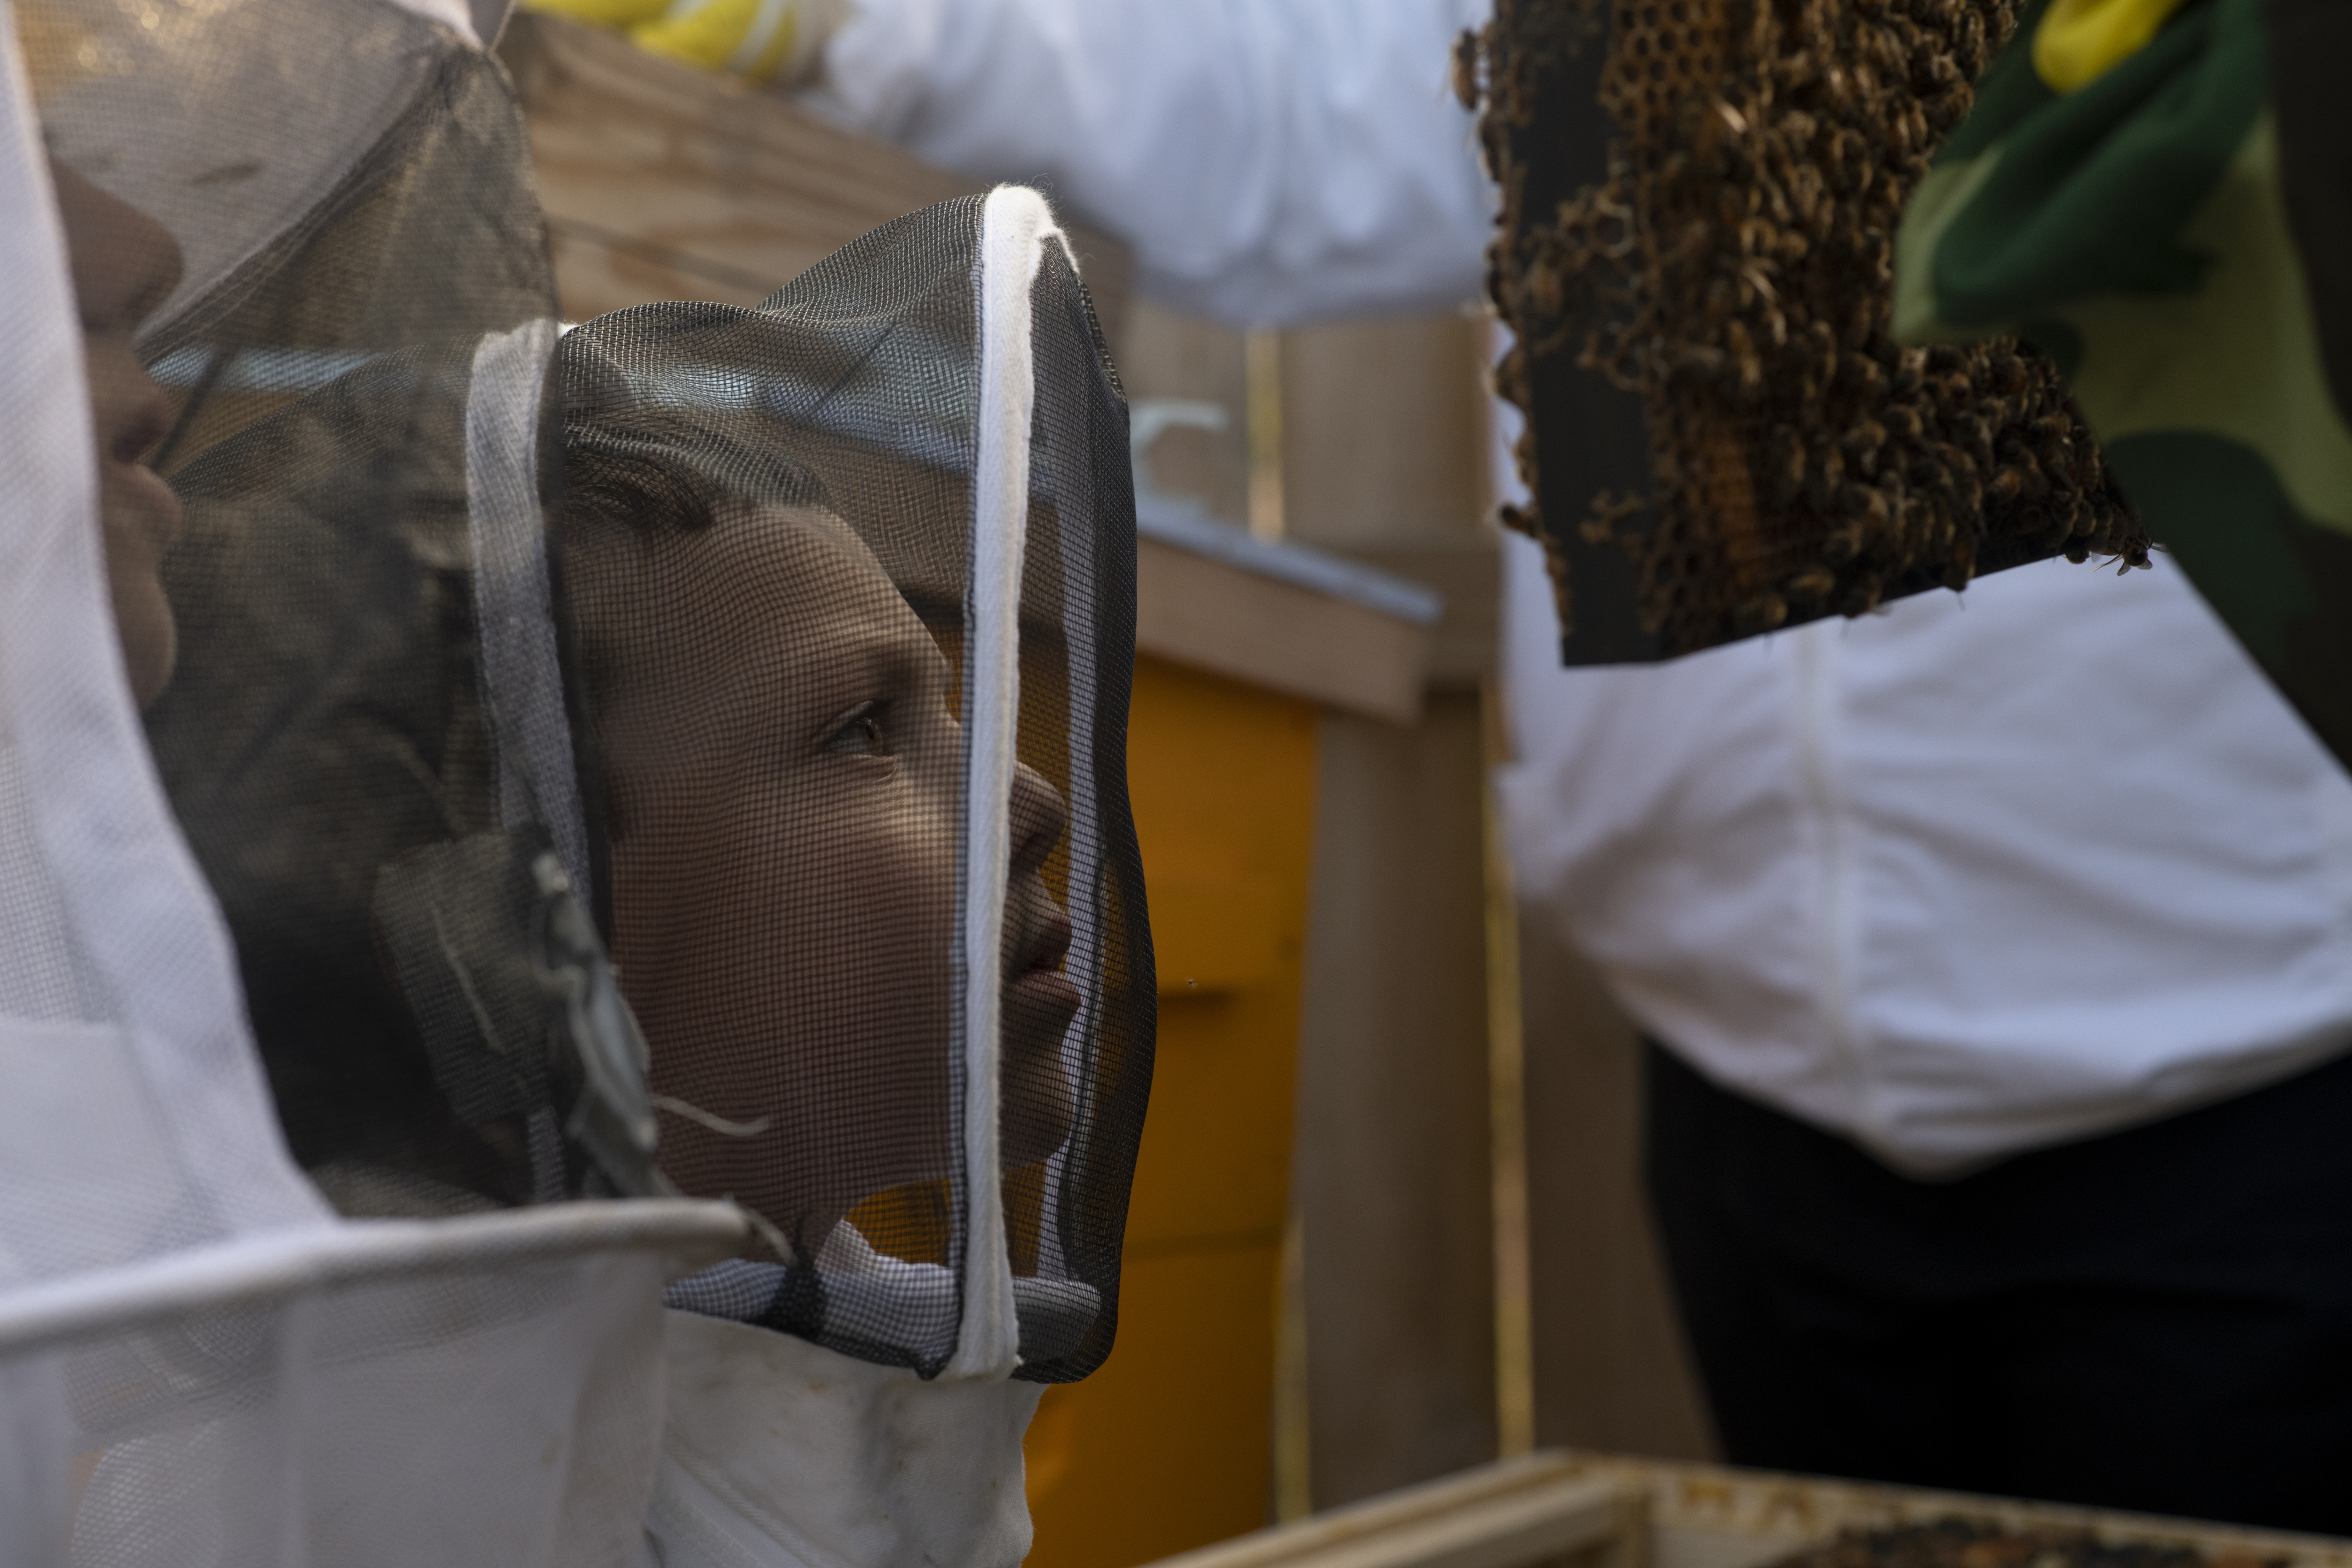 Lucas Plotkin, 6, of Brooklyn, New York, looks at a frame of bees during a tour of the farm.